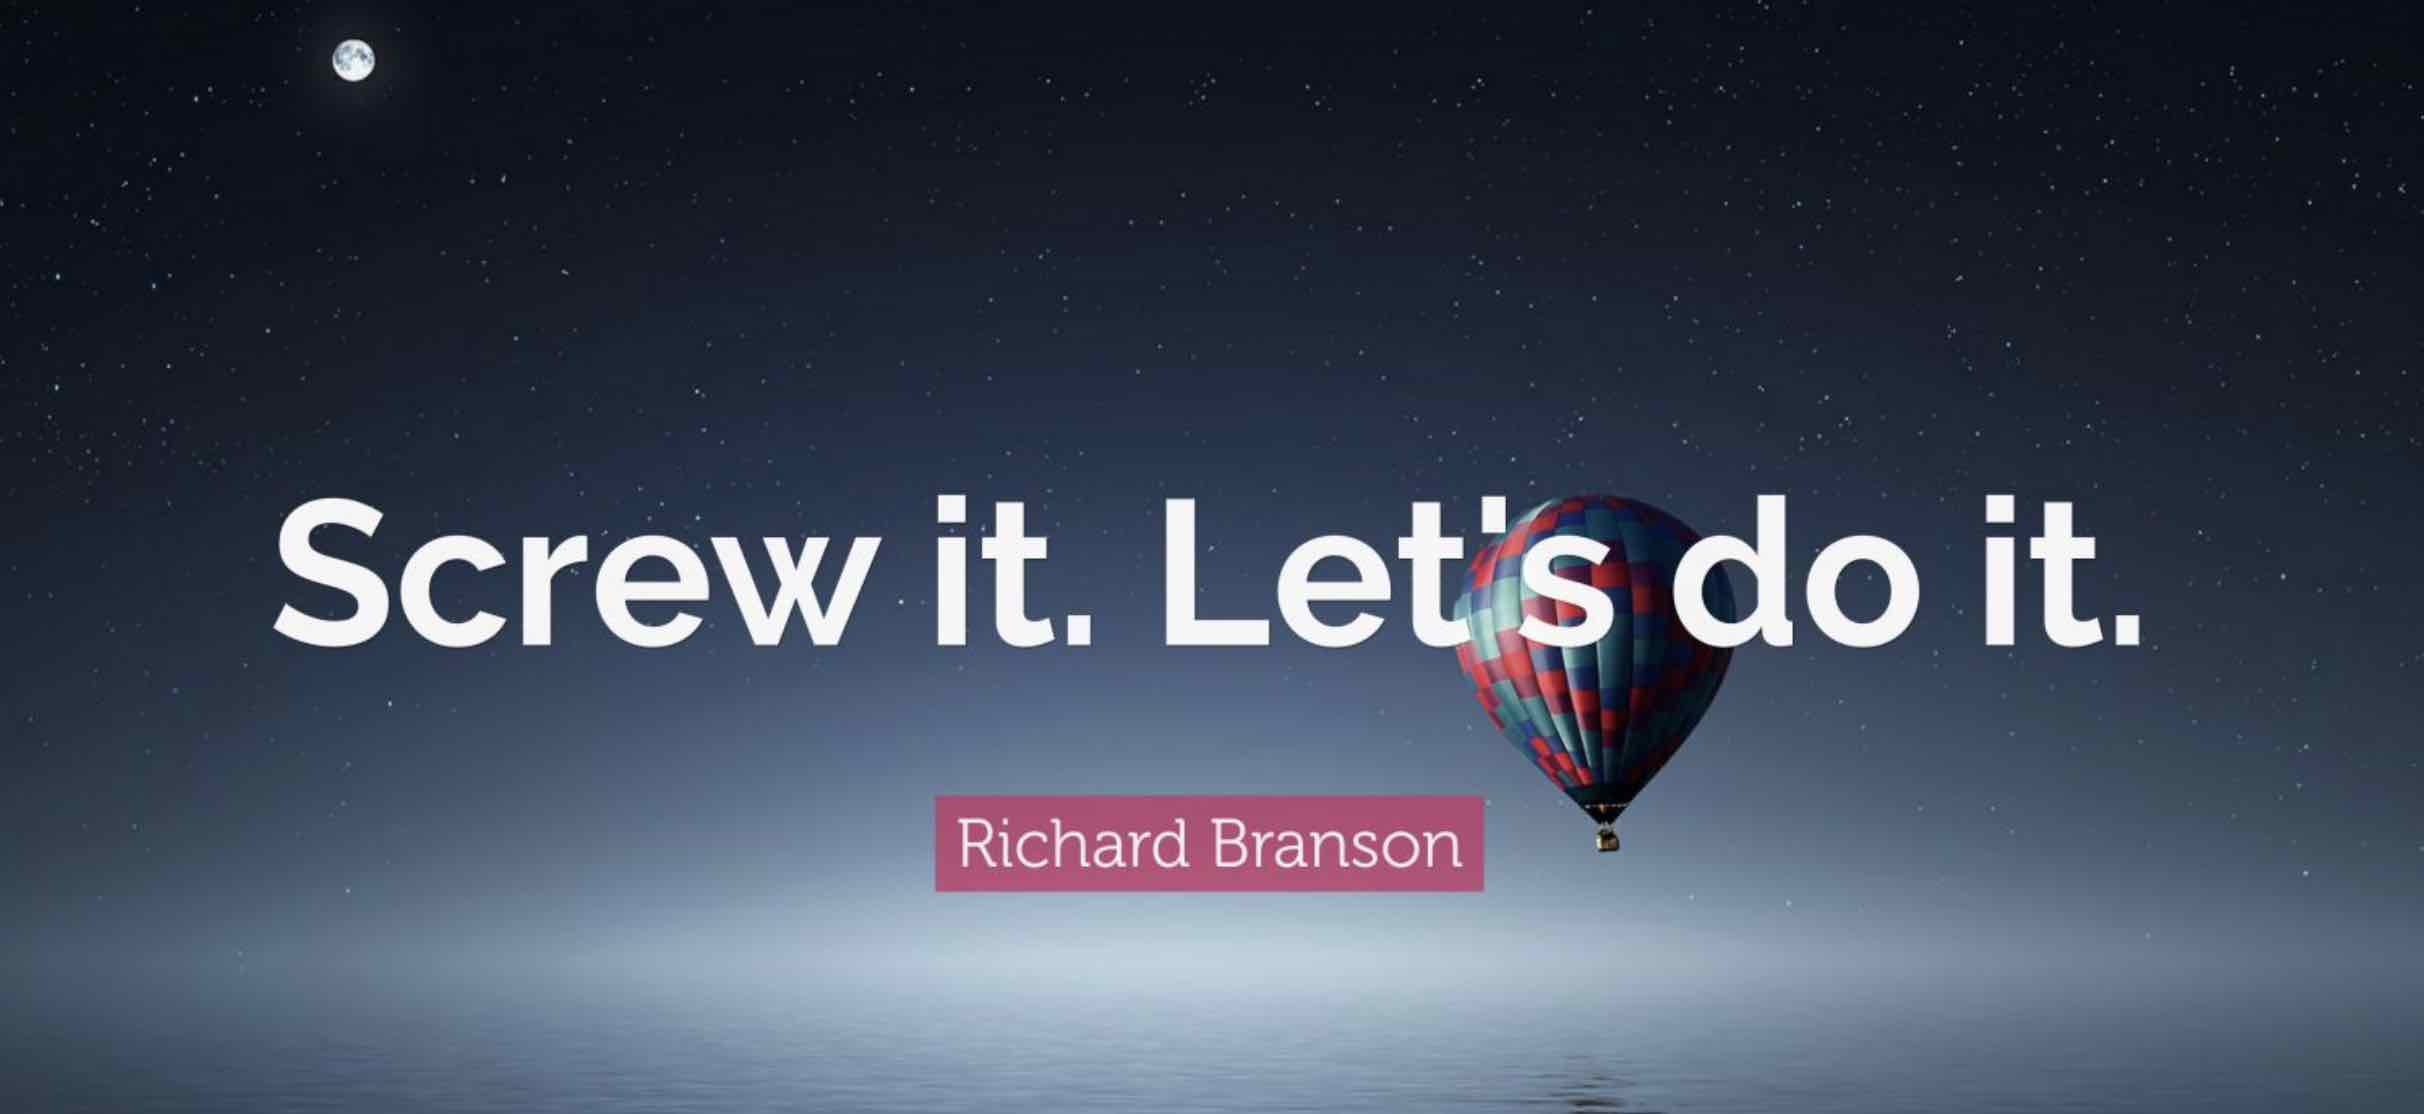 "QUOTE By Richard Branson - ""Screw it, Lets do it!"""